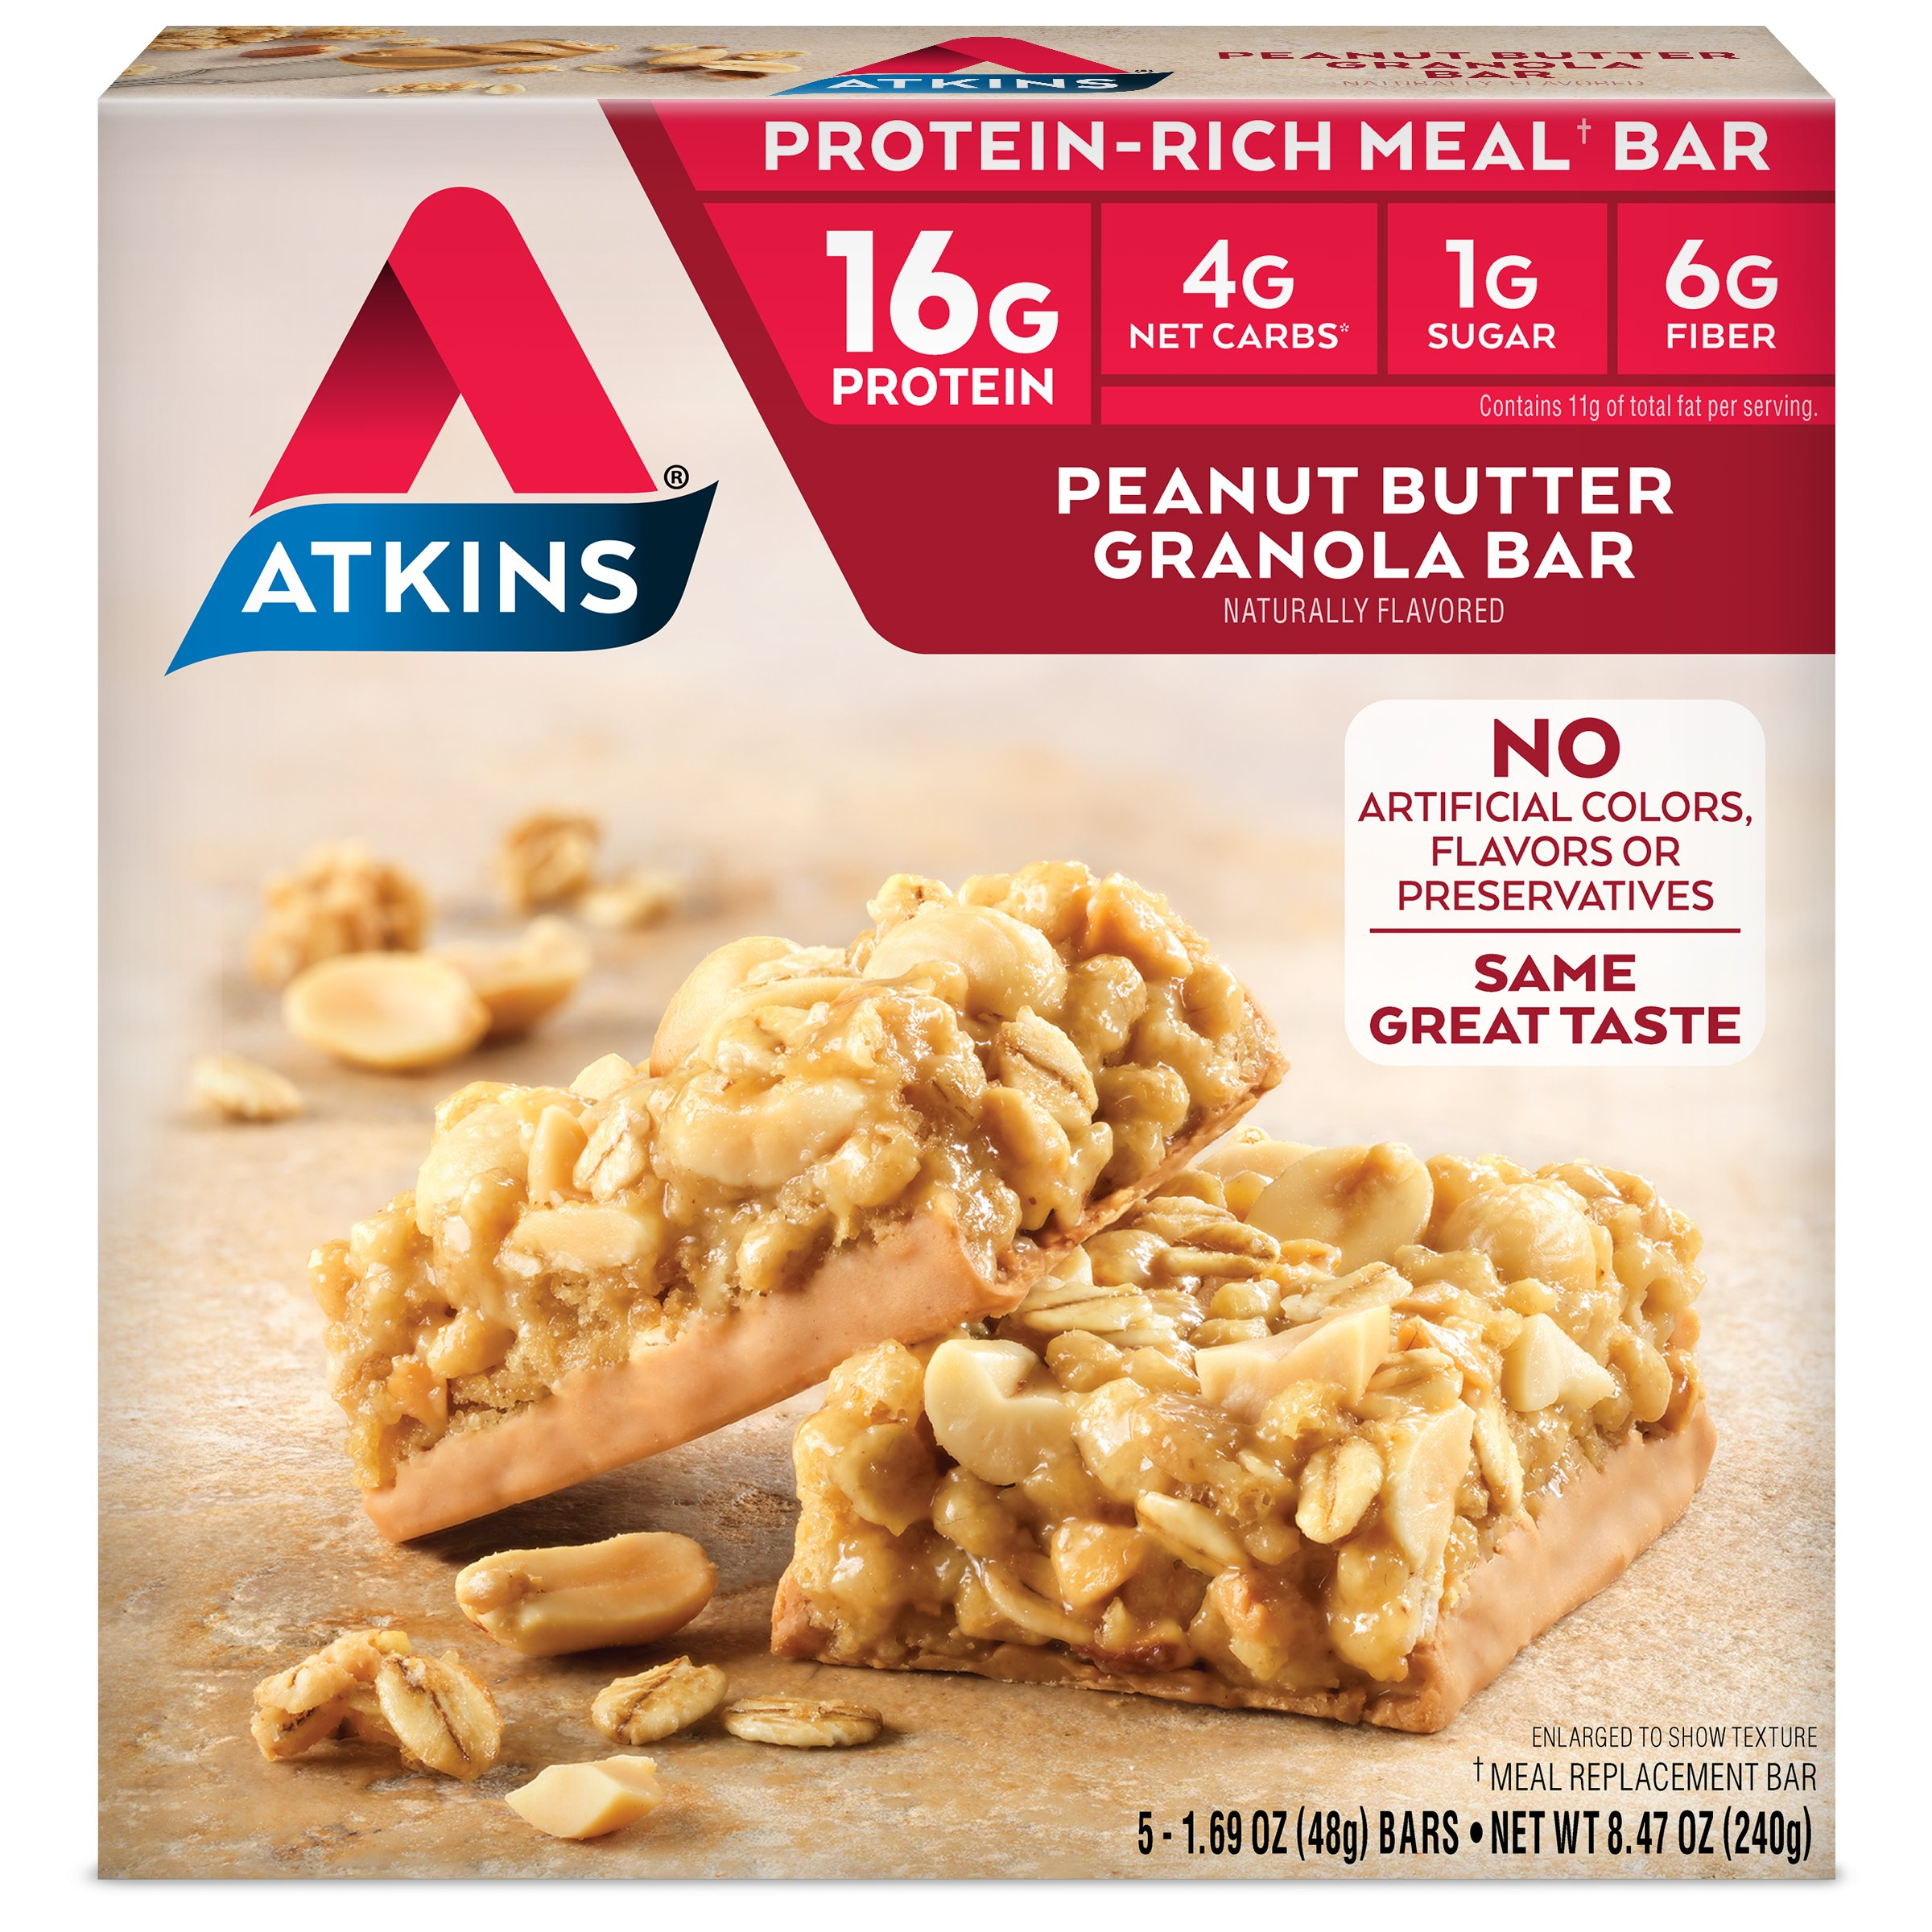 Atkins Protein-Rich Meal Bar, Peanut Butter Granola, 5 Count, Package may vary by Atkins